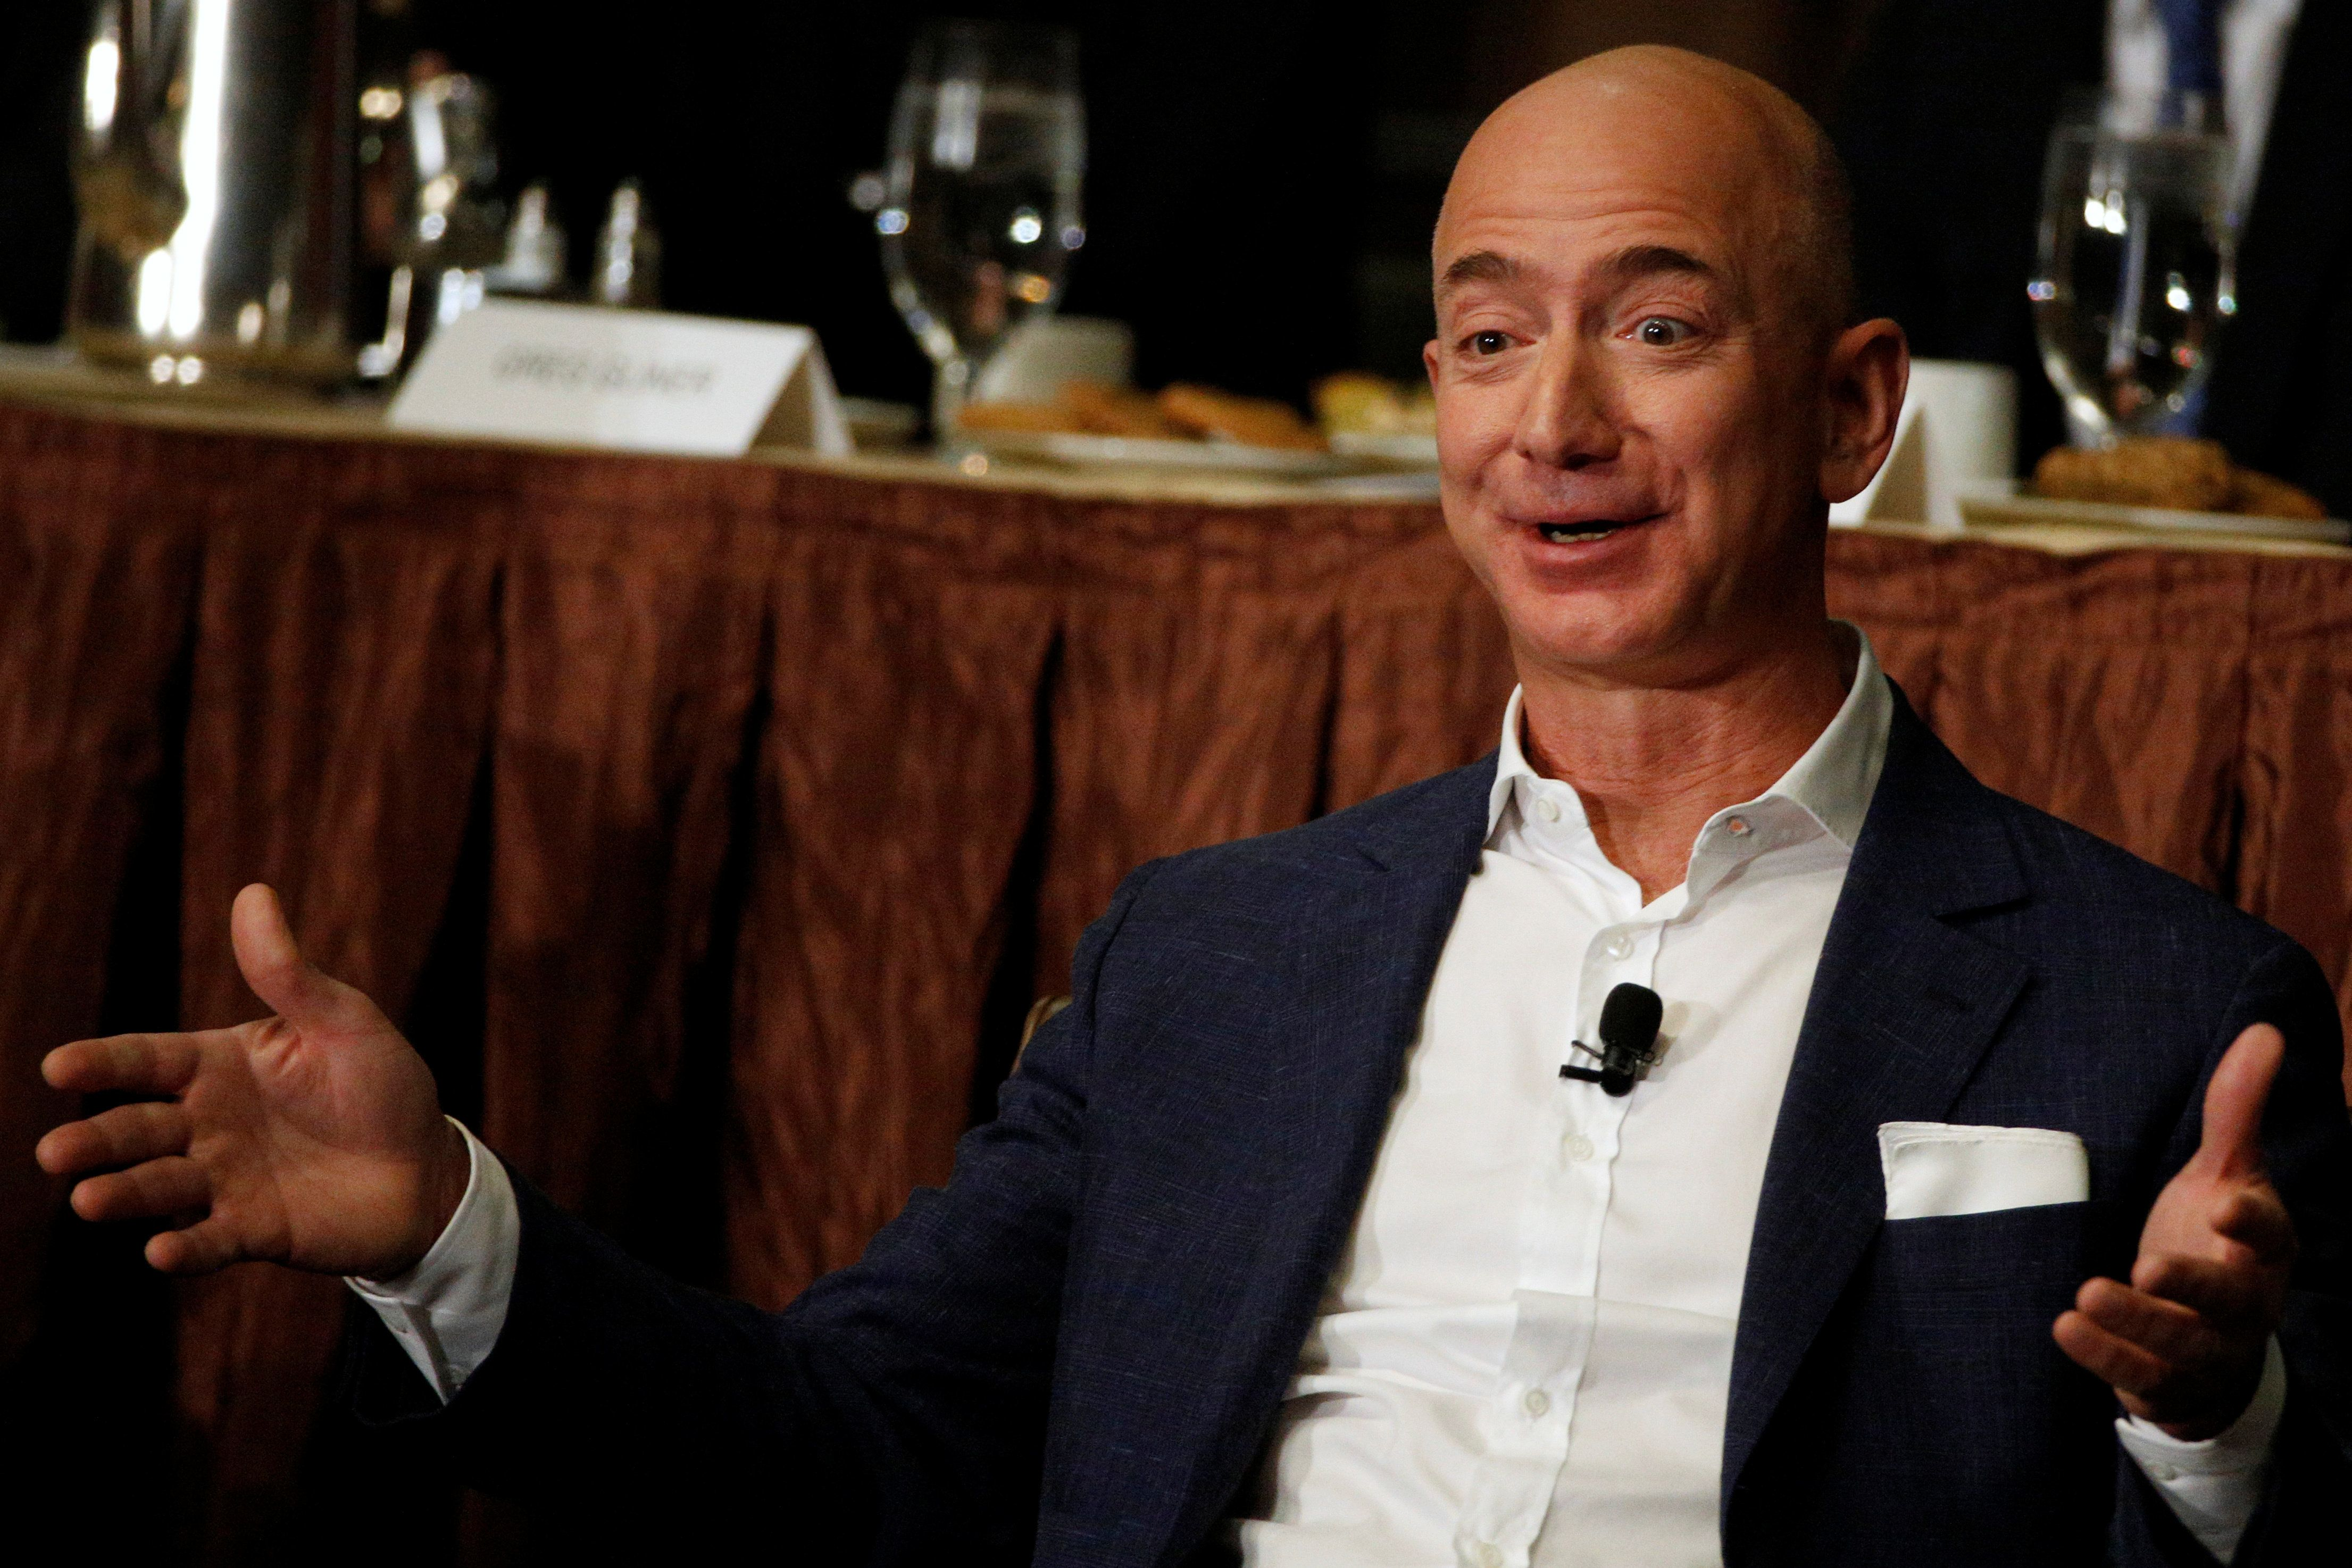 Jeff Bezos Is No Longer 'World's Richest Man' As Amazon Stock